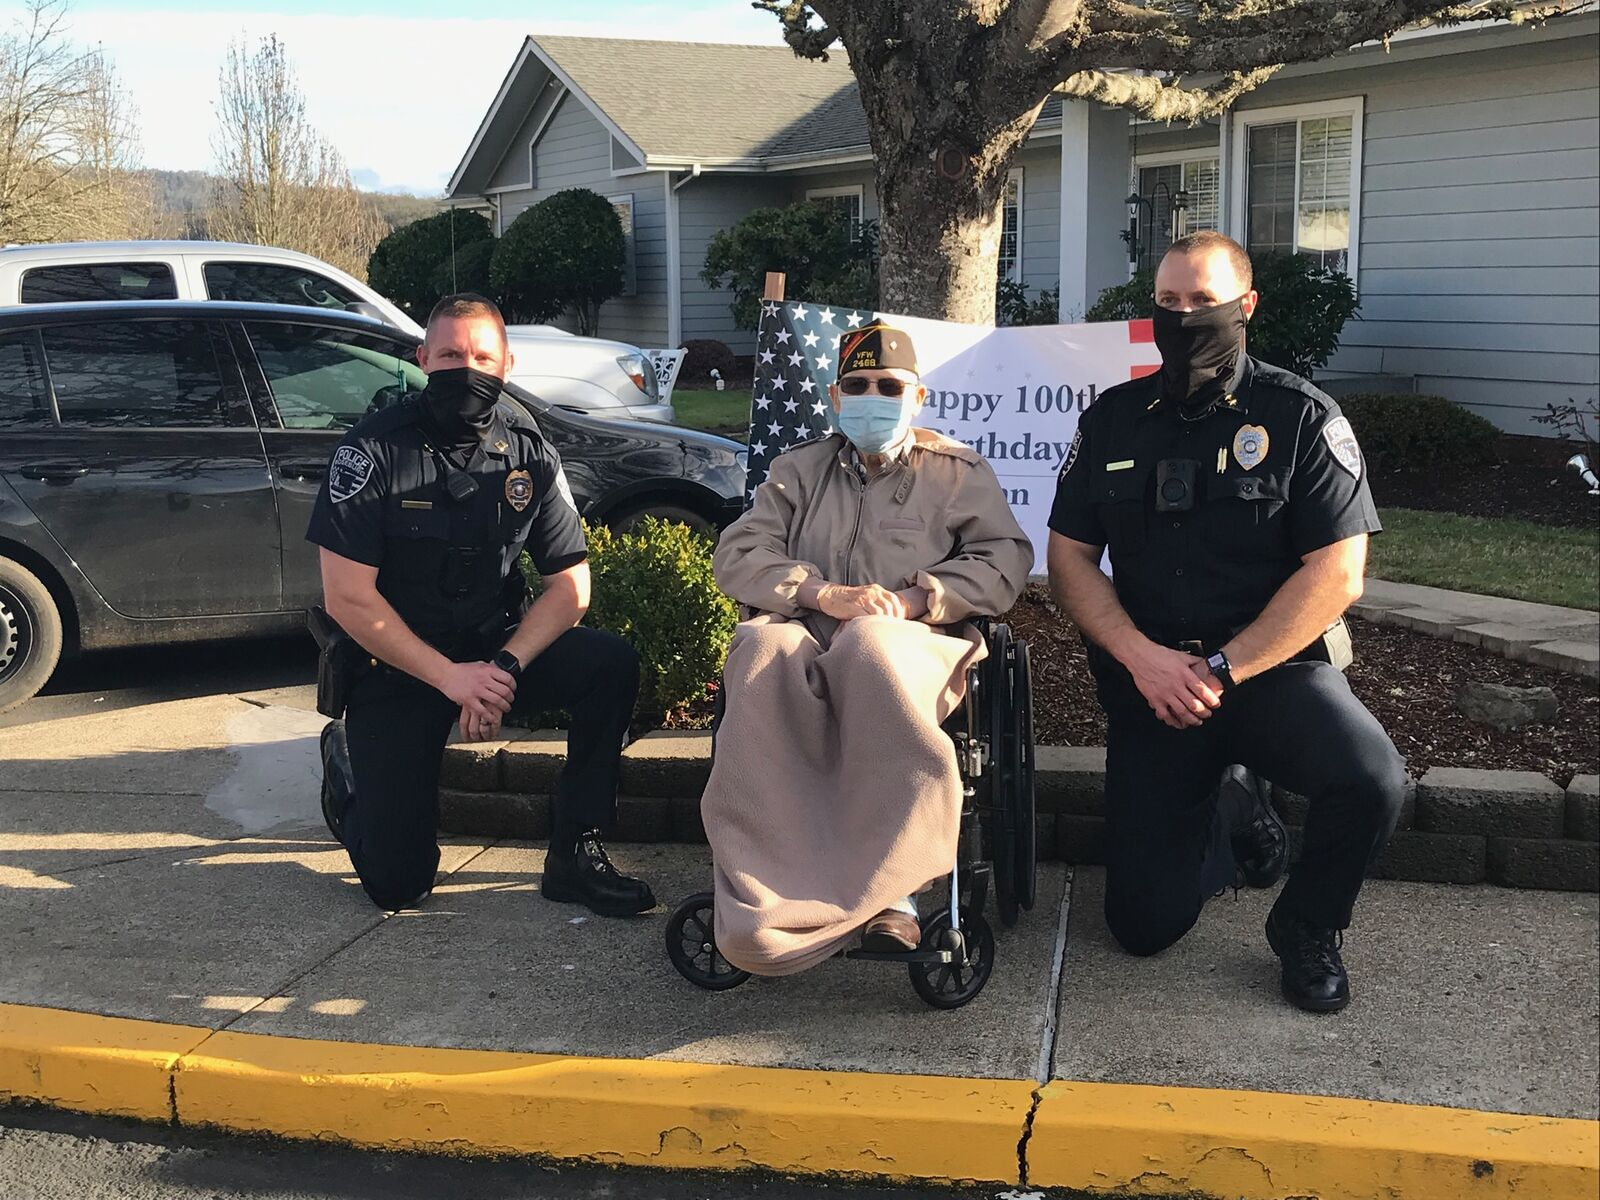 WWII veteran John Crouch celebrates his 100th birthday with a visit from members of the the Roseburg Police Department, Roseburg Fire Department, Oregon Army National Guard's Charlie Company, & several friends, Jan 13, 2021. (Photo courtesy Roseburg PD)